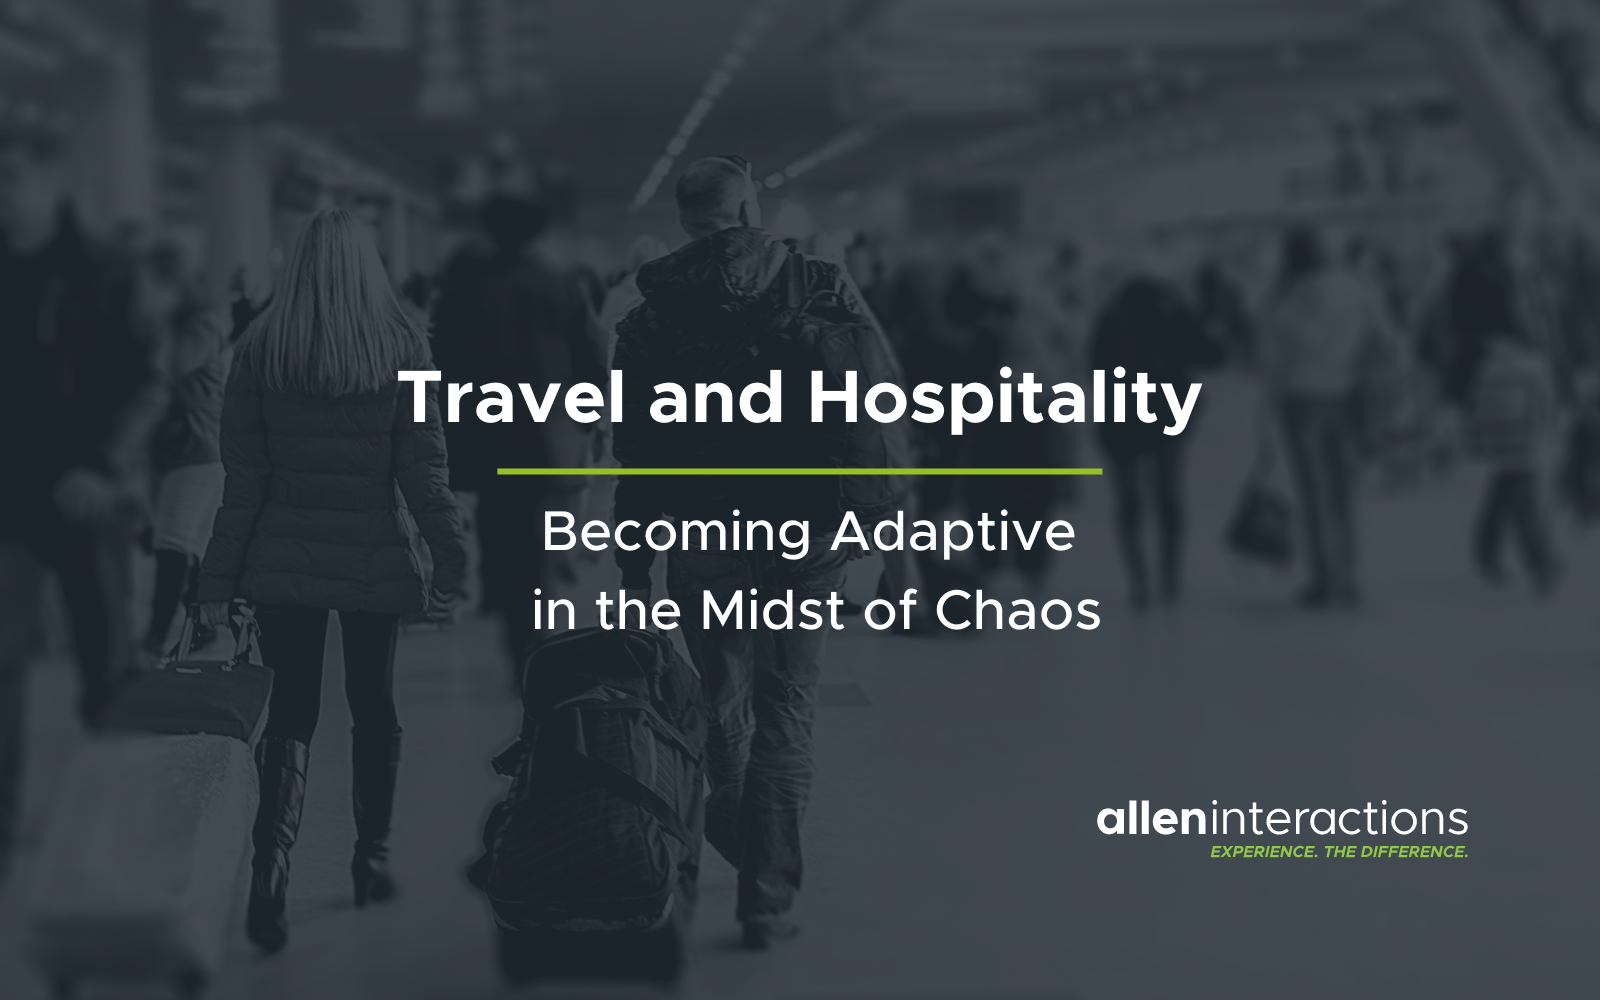 Travel and Hospitality: Becoming Adaptive in the Midst of Chaos